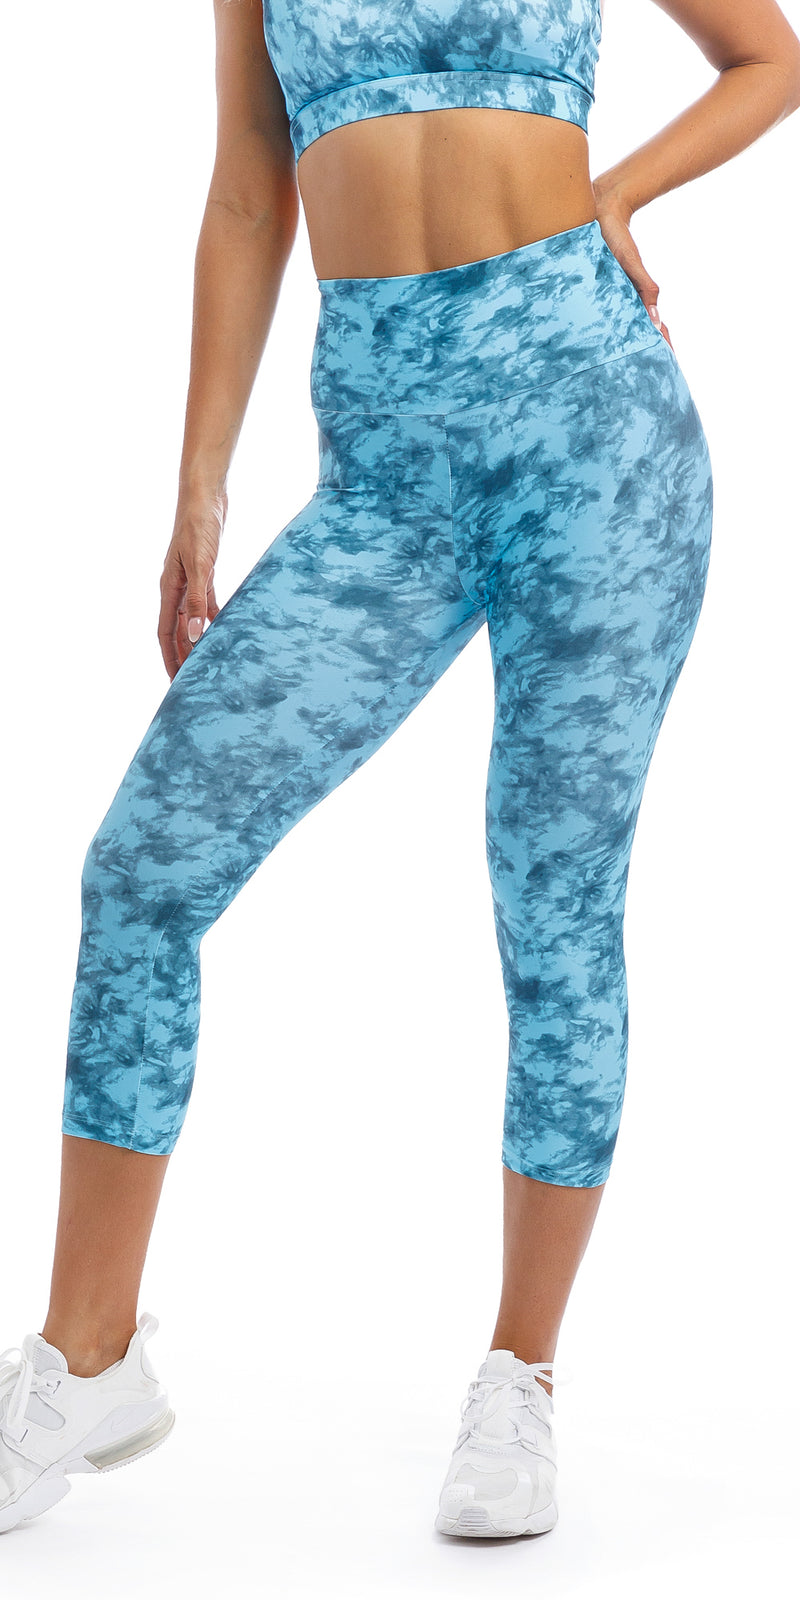 Girl with hand on hip wearing blue tie dye blue crush print ultra high waist capri leggings & matching racer back bra